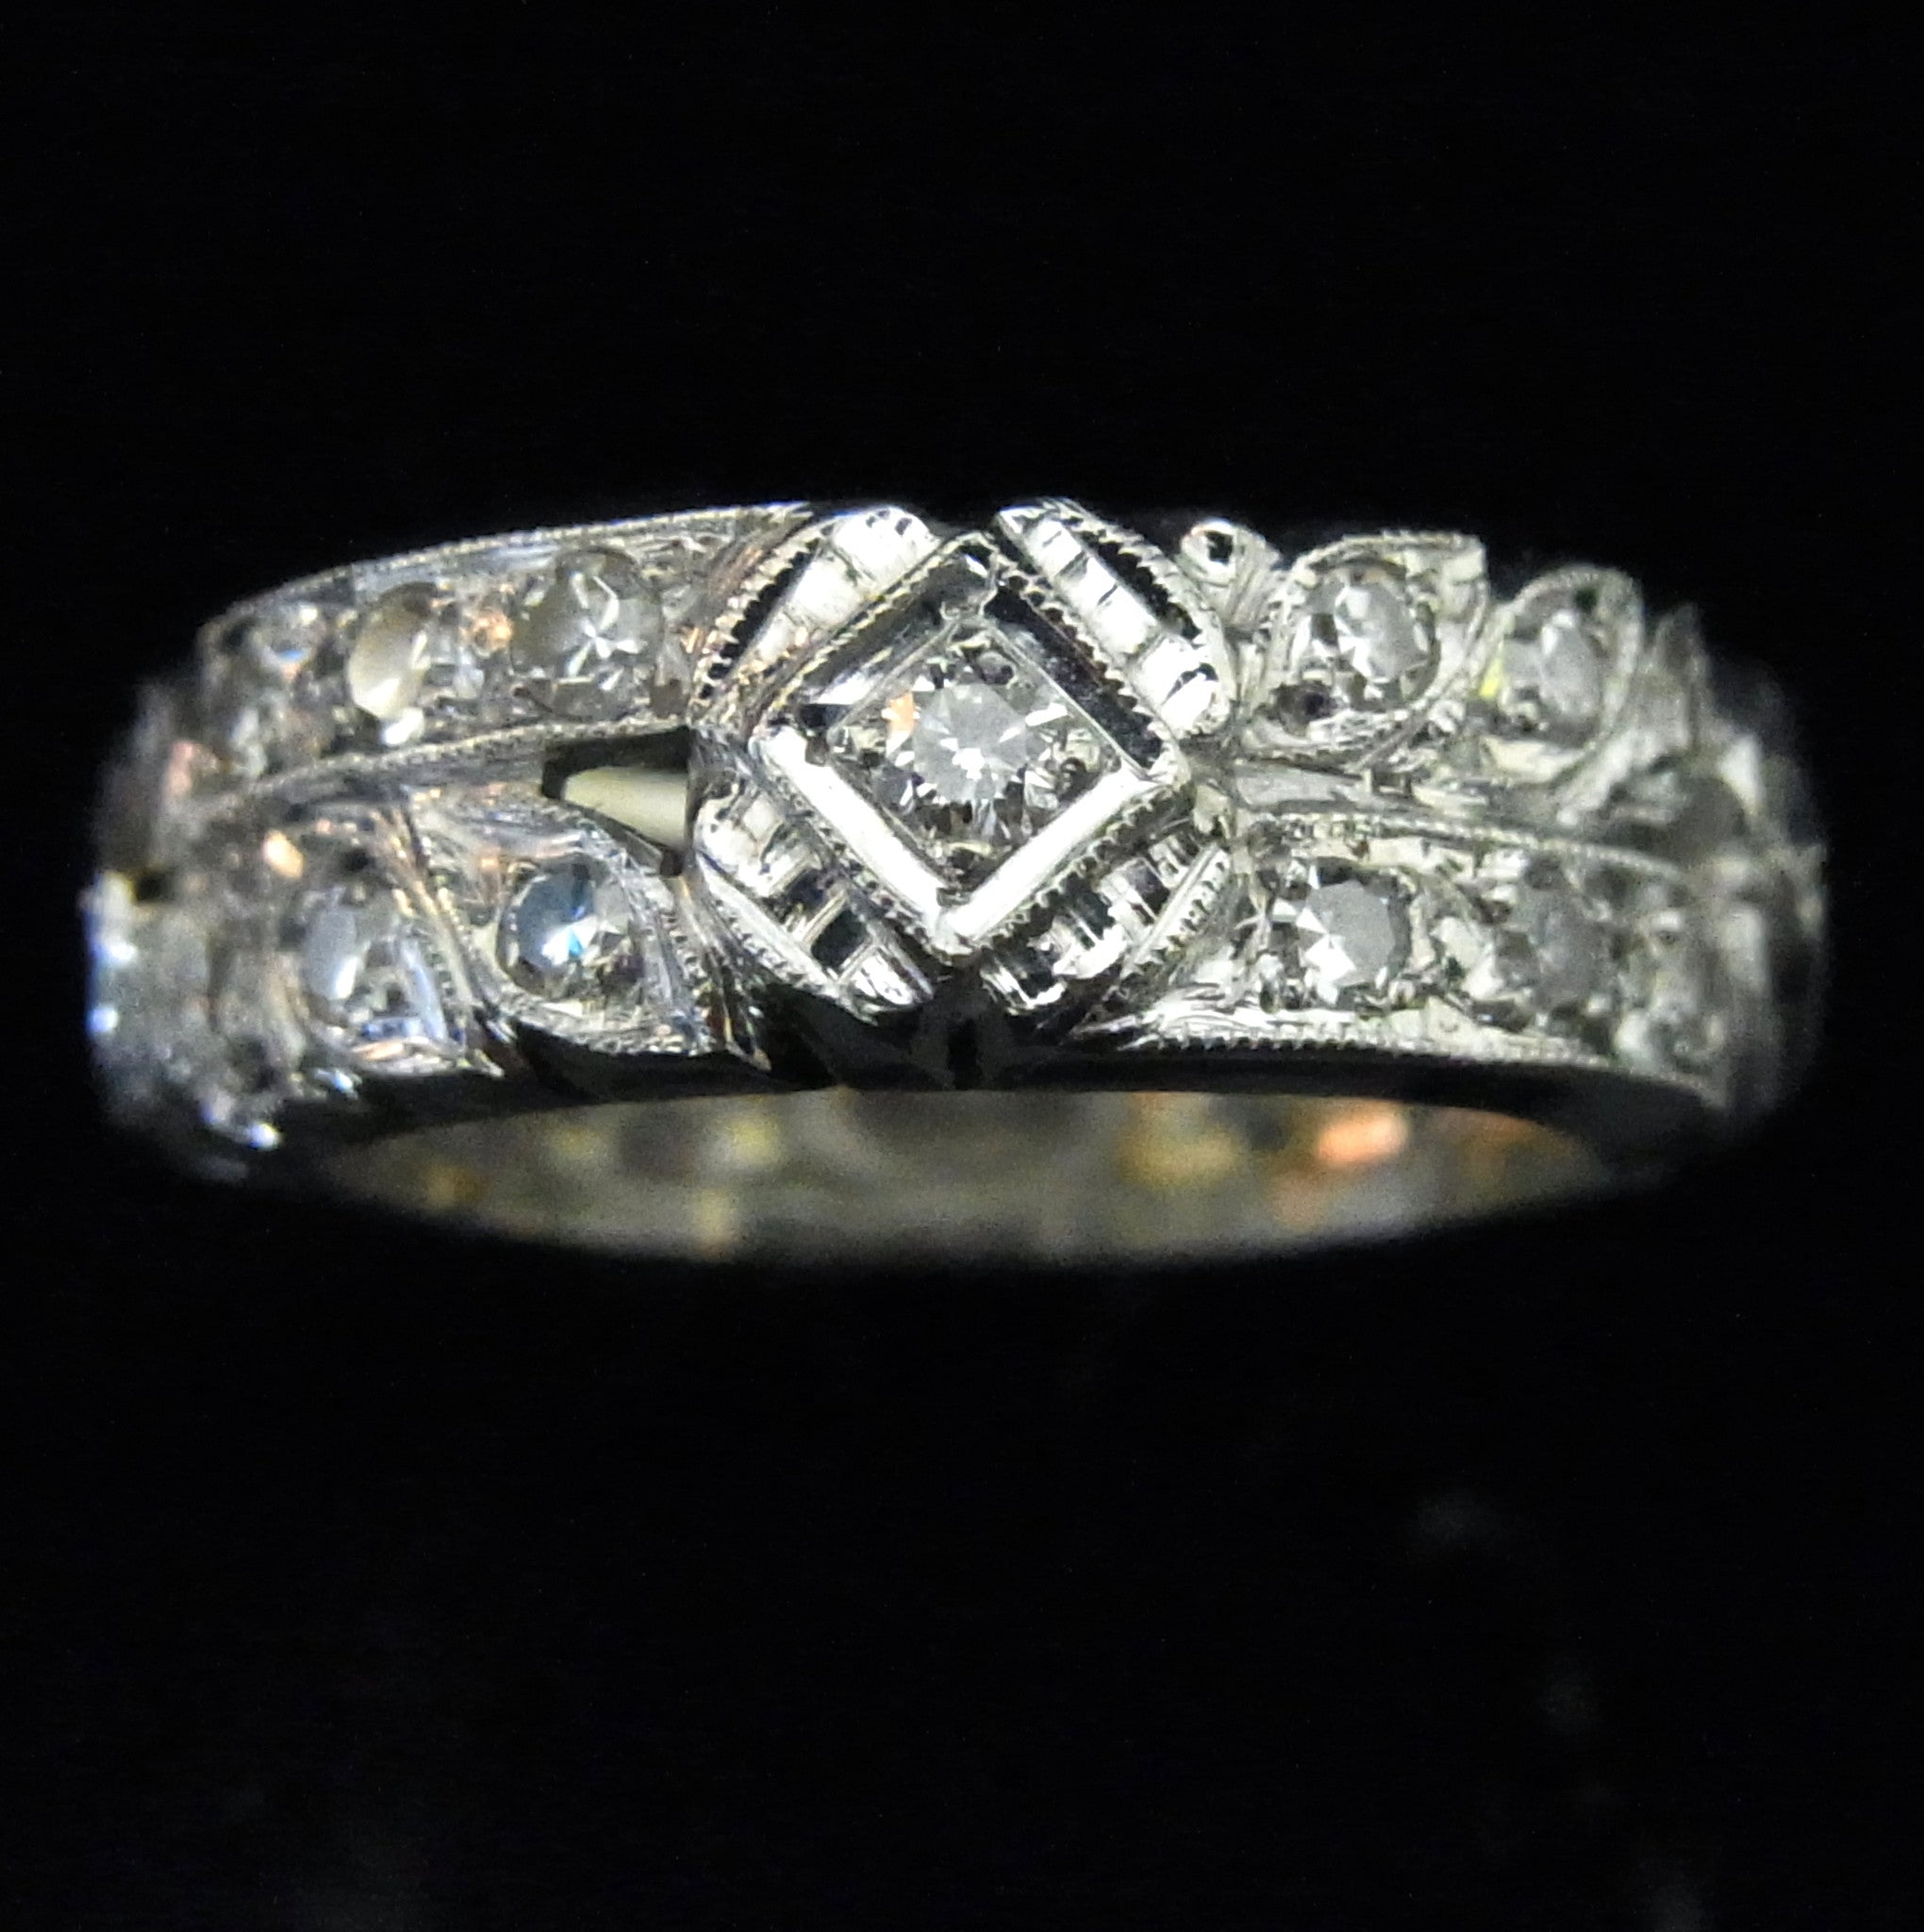 halo engagement carat white ring webstore d h samuel number gold bands eternity product diamond band